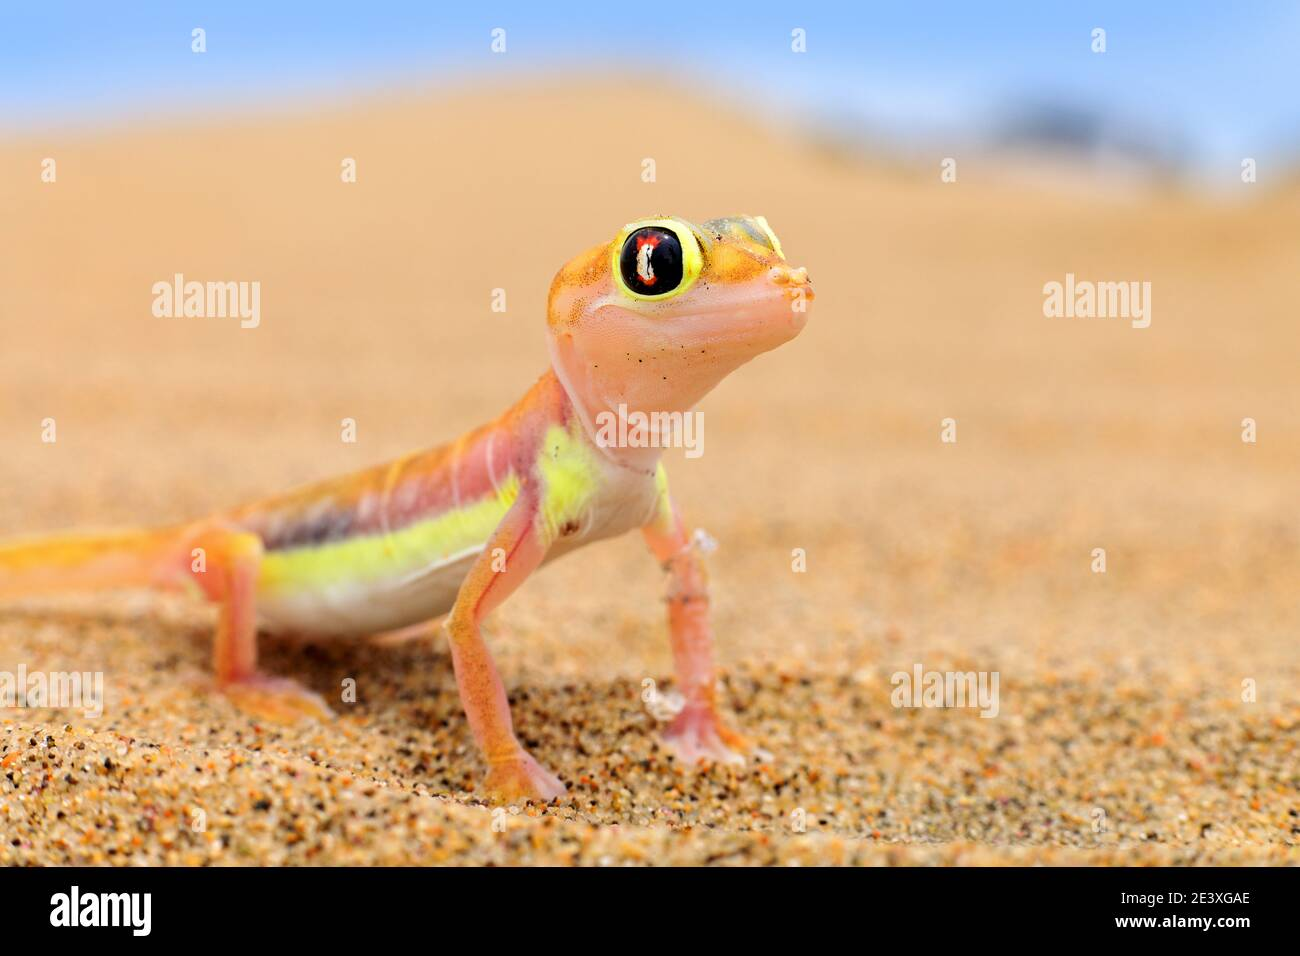 Gecko from Namib sand dune, Namibia. Pachydactylus rangei, Web-footed palmato gecko in the nature desert habitat. Lizard in Namibia desert with blue s Stock Photo